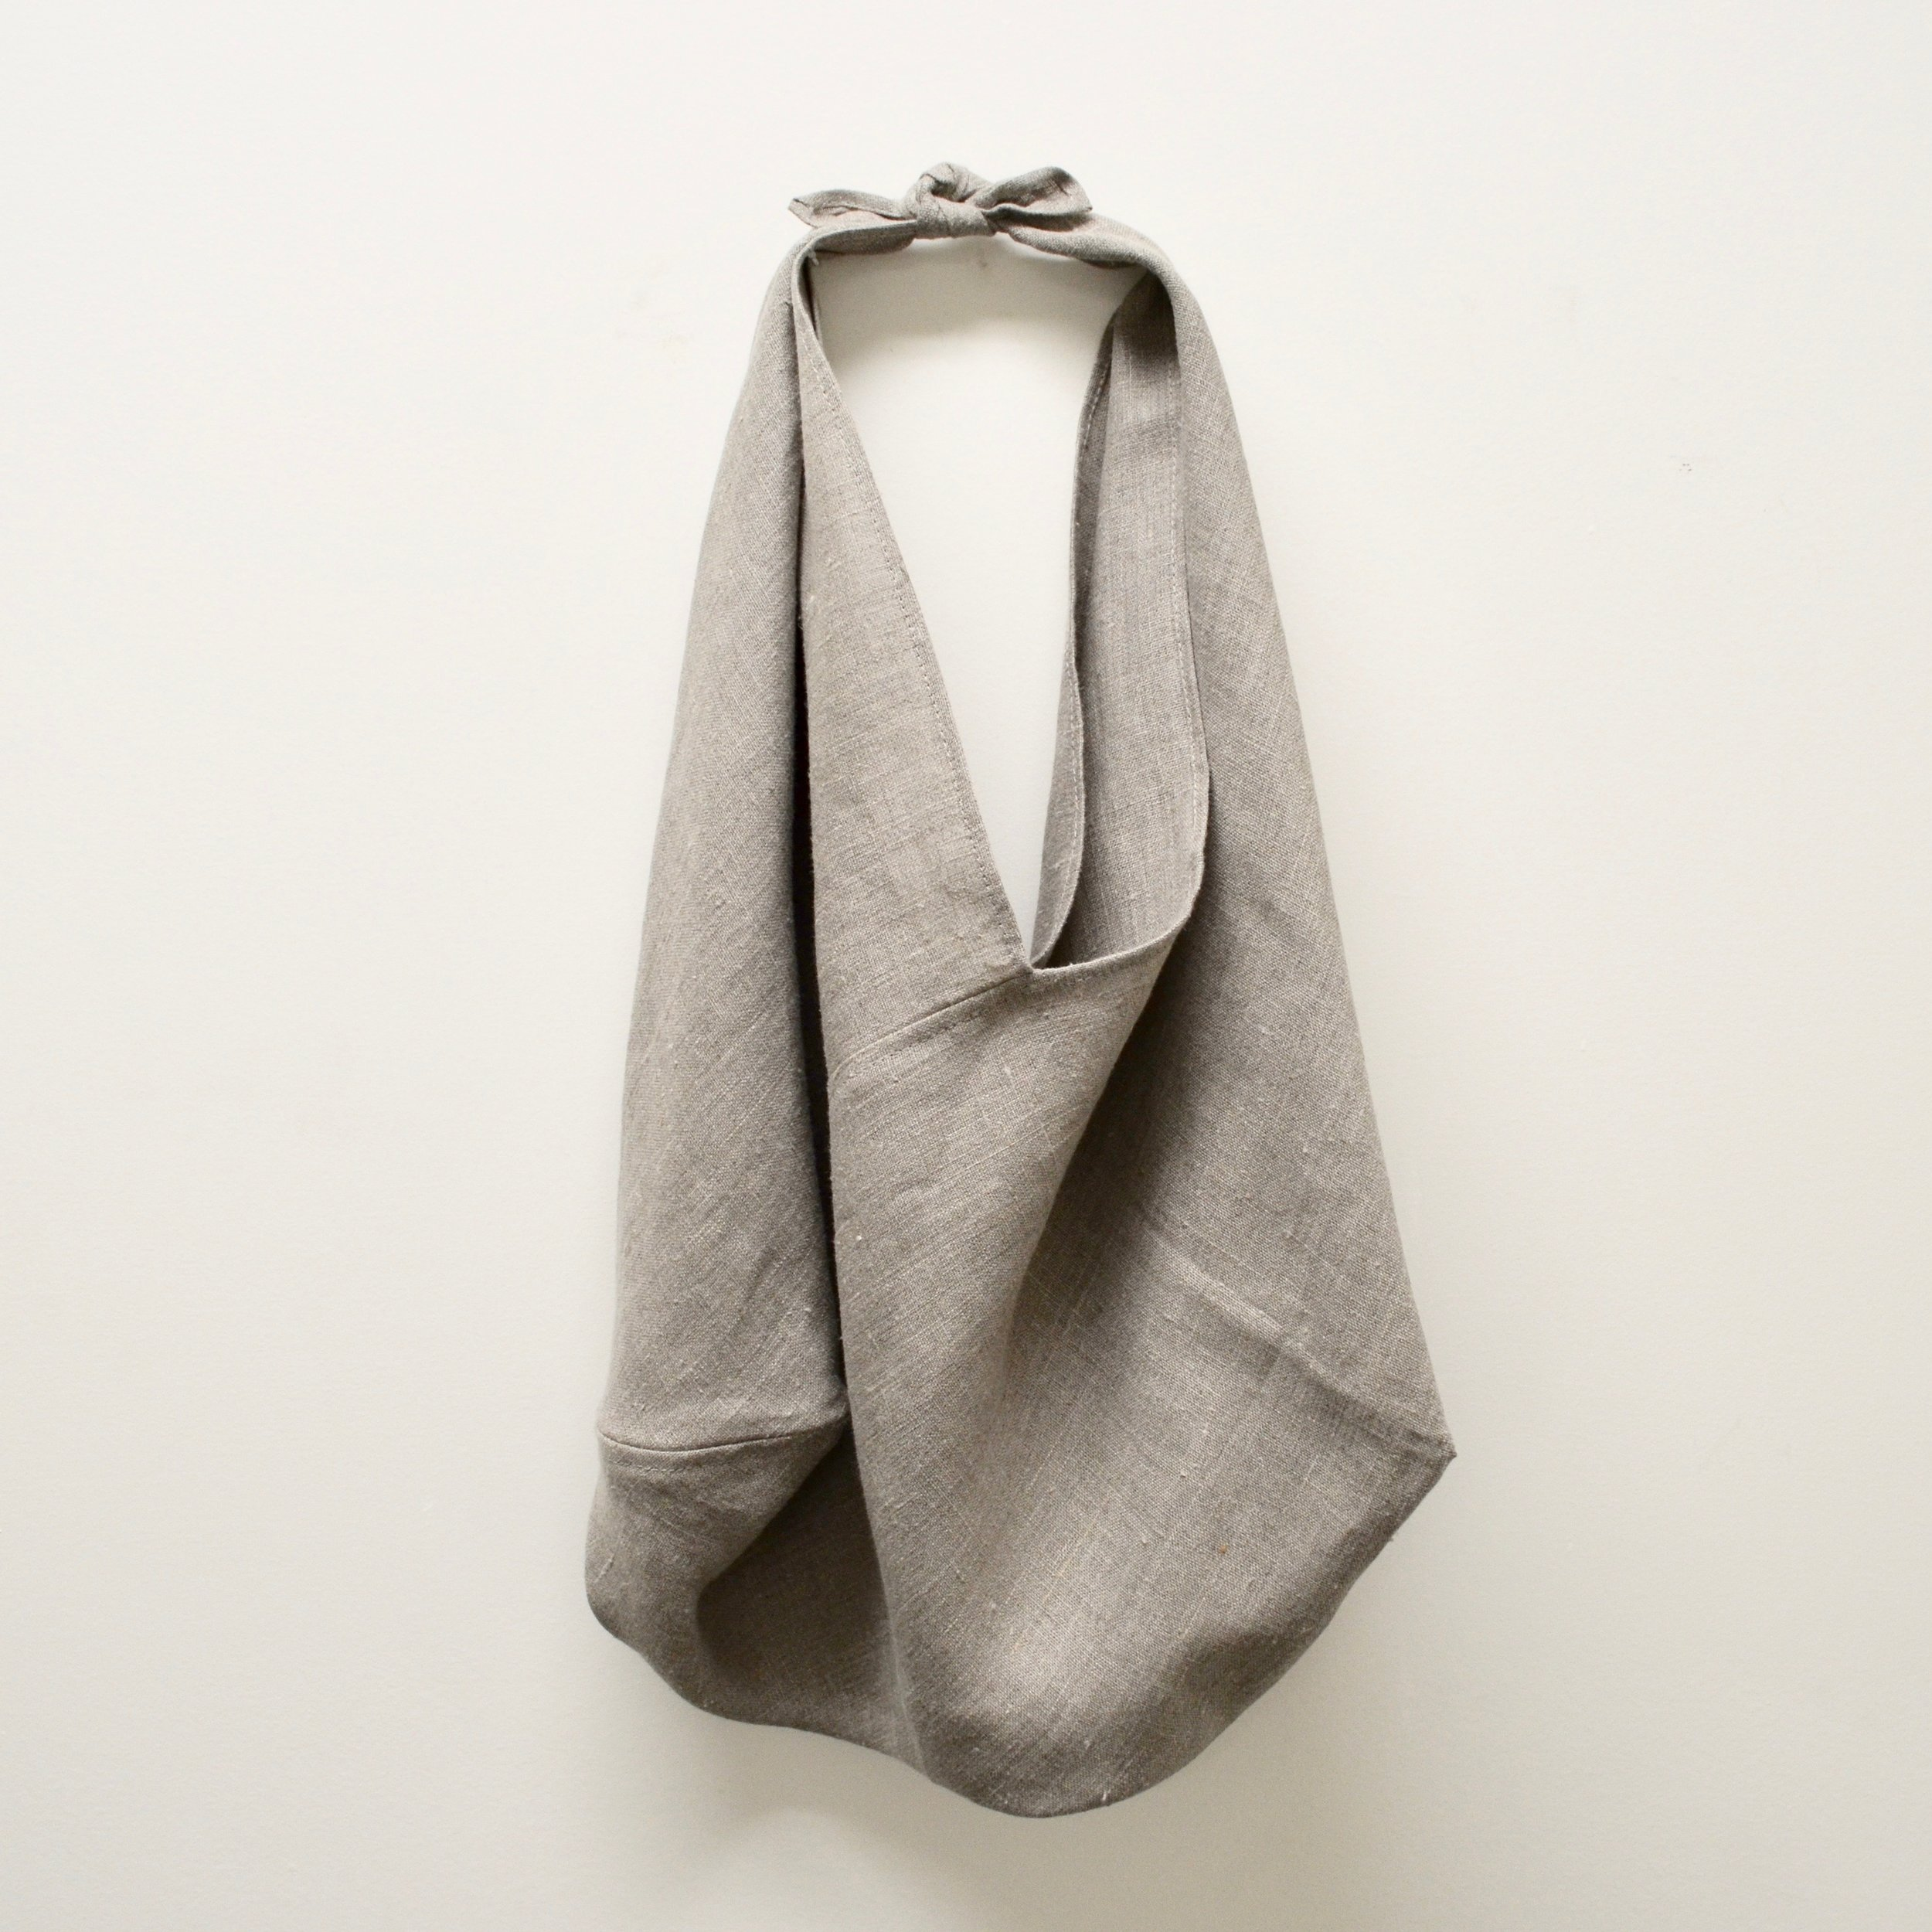 - LARGE LINEN BAG IN NATURAL